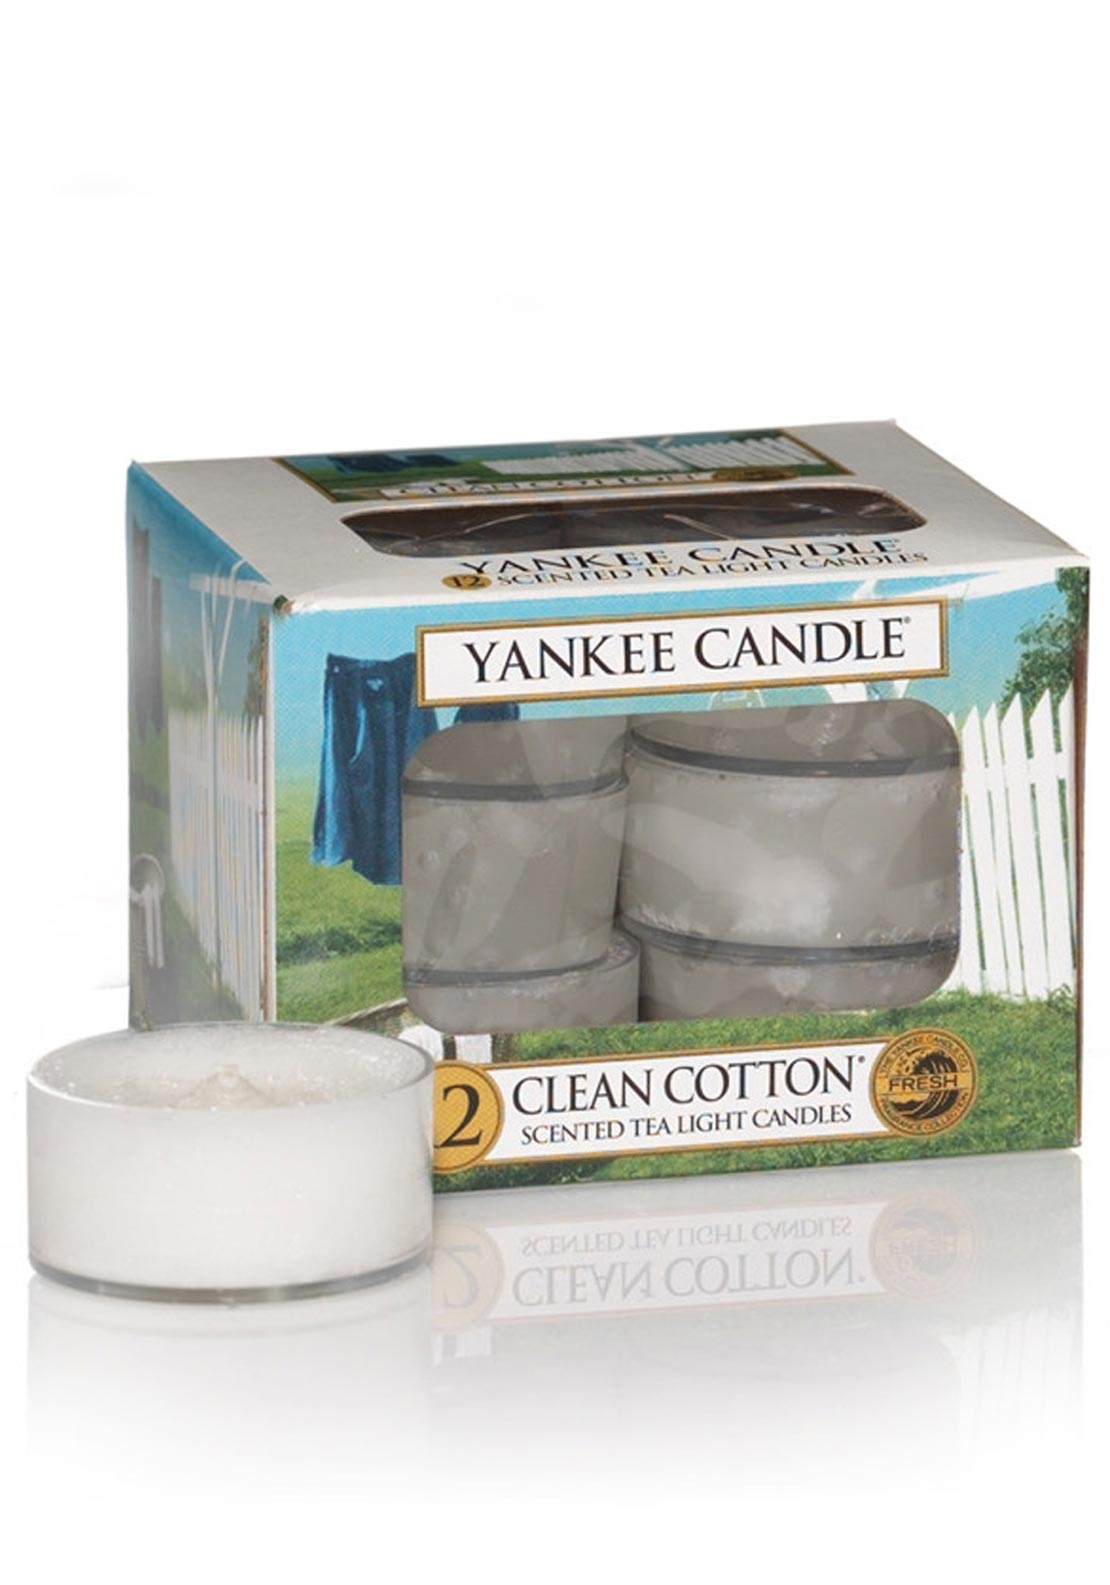 Yankee Candle 12 Scented Tea Light Candles, Clean Cotton